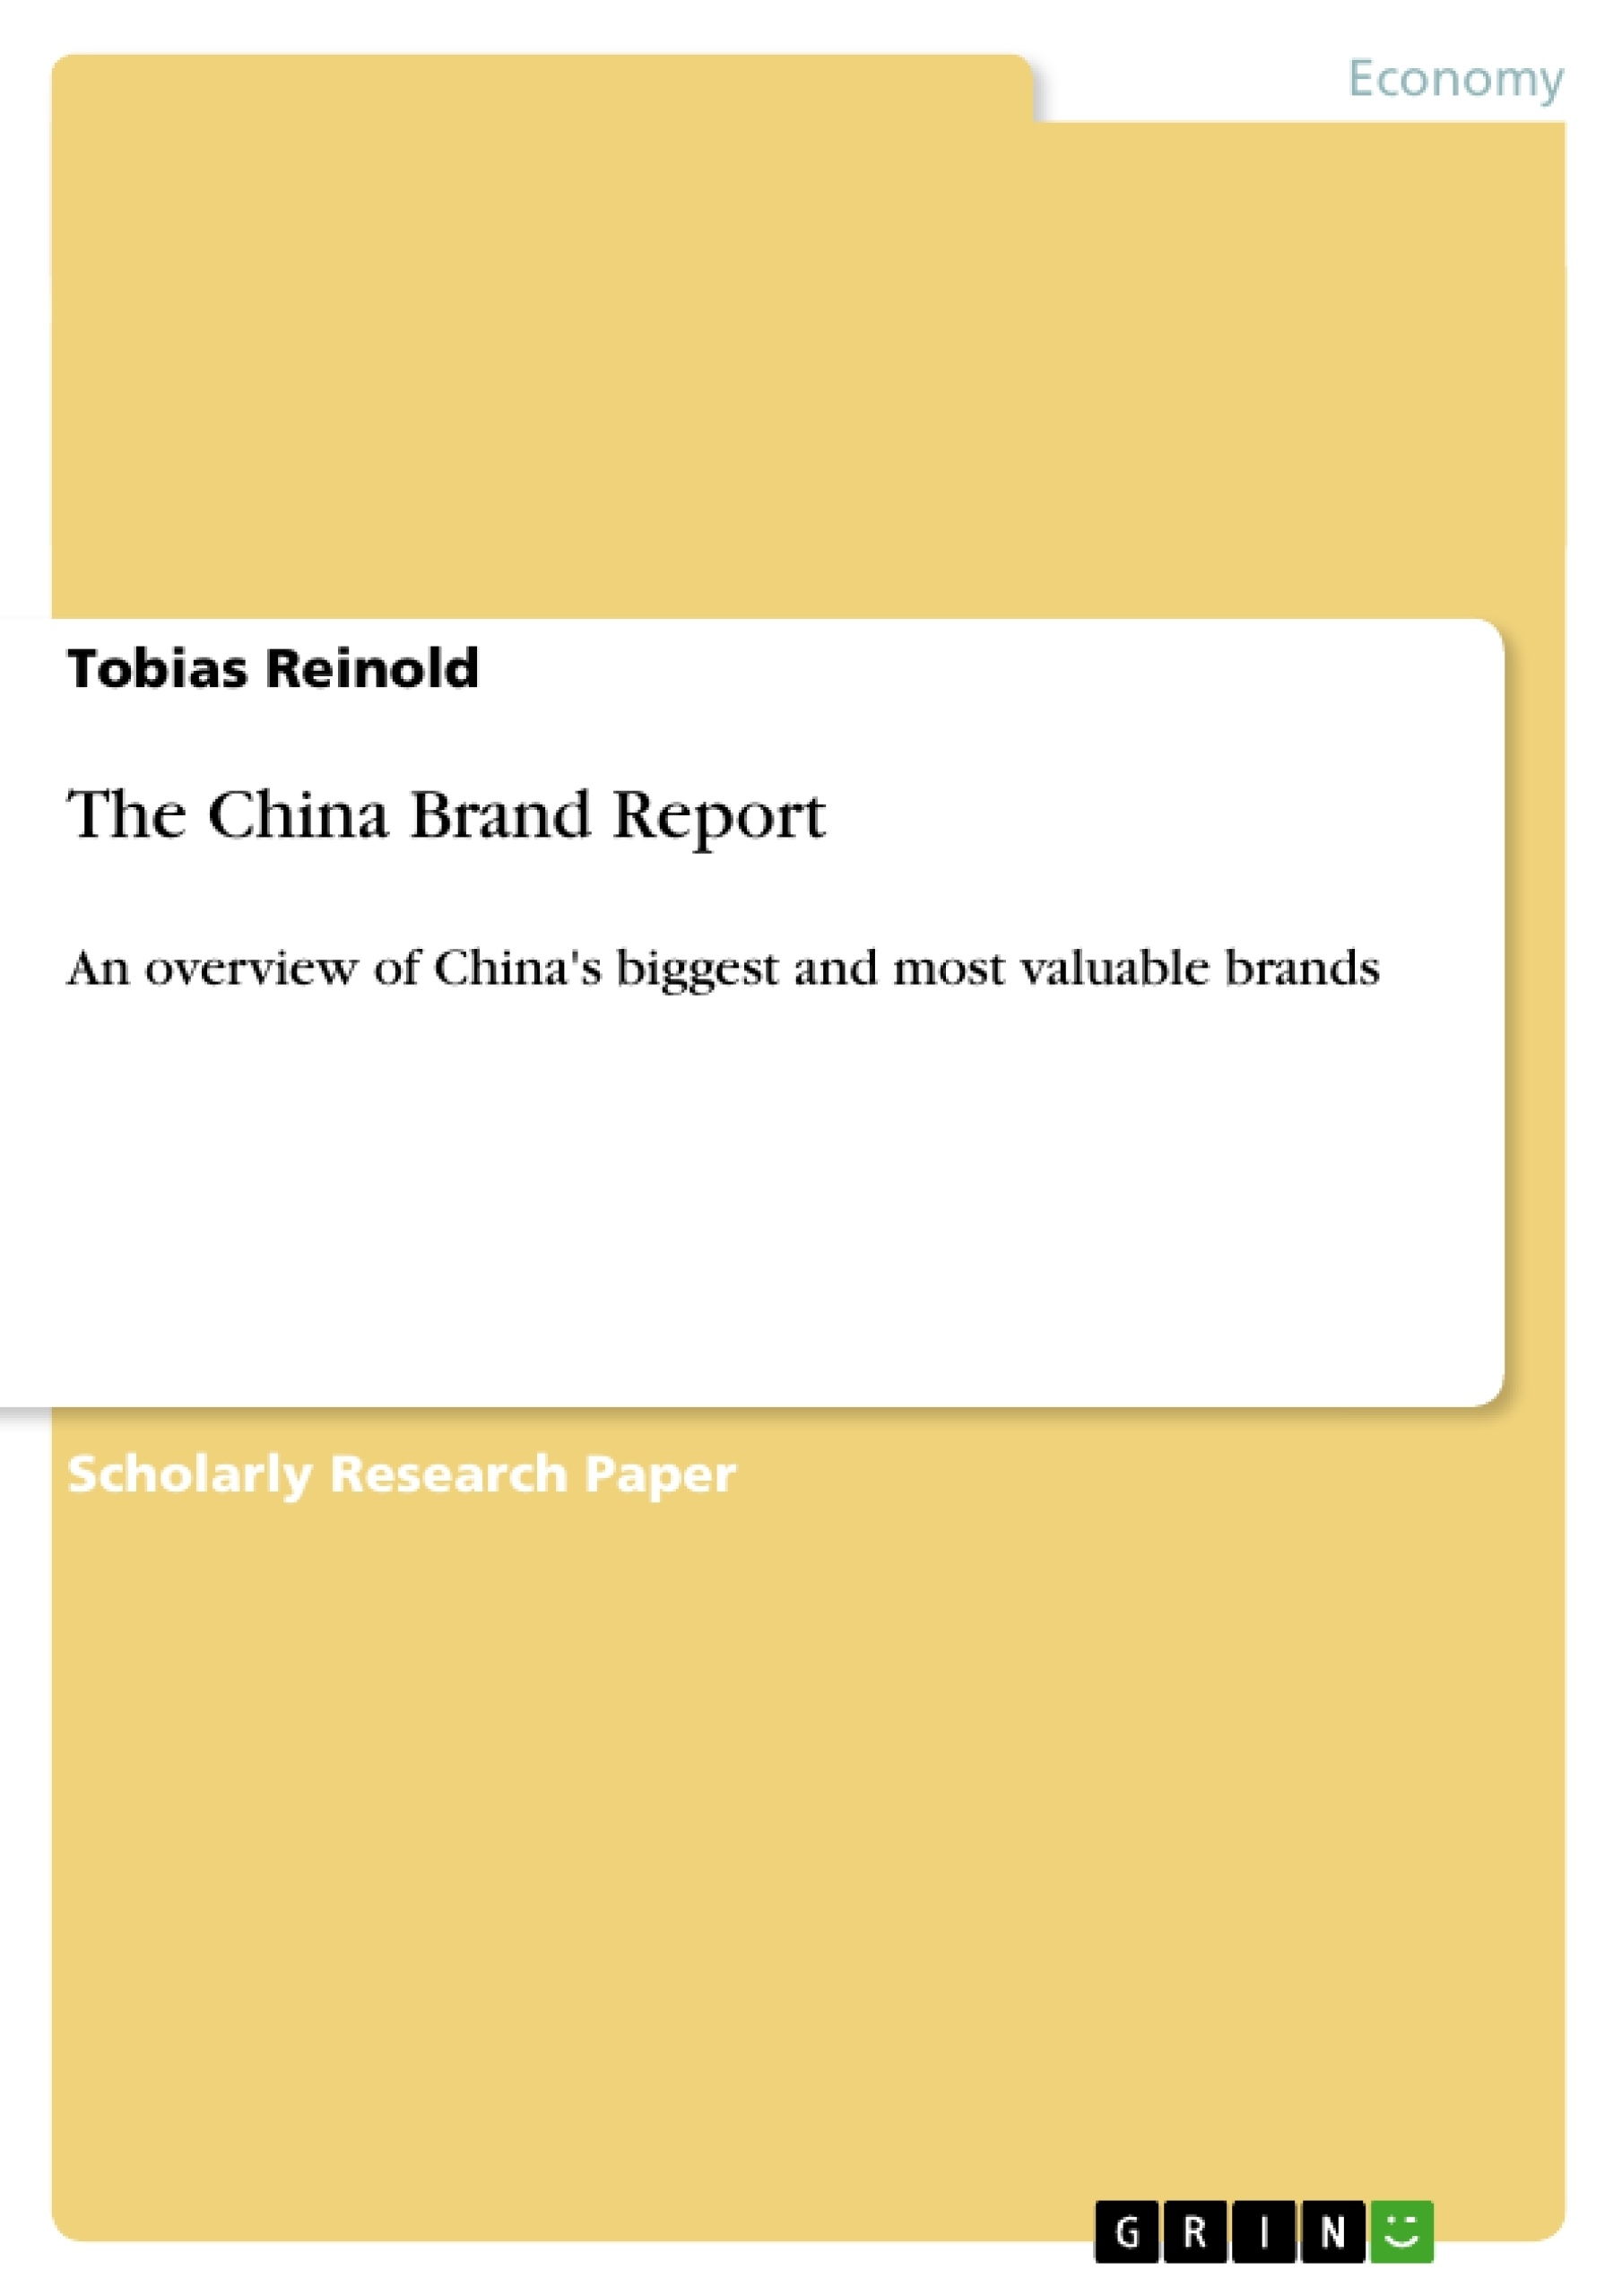 Title: The China Brand Report